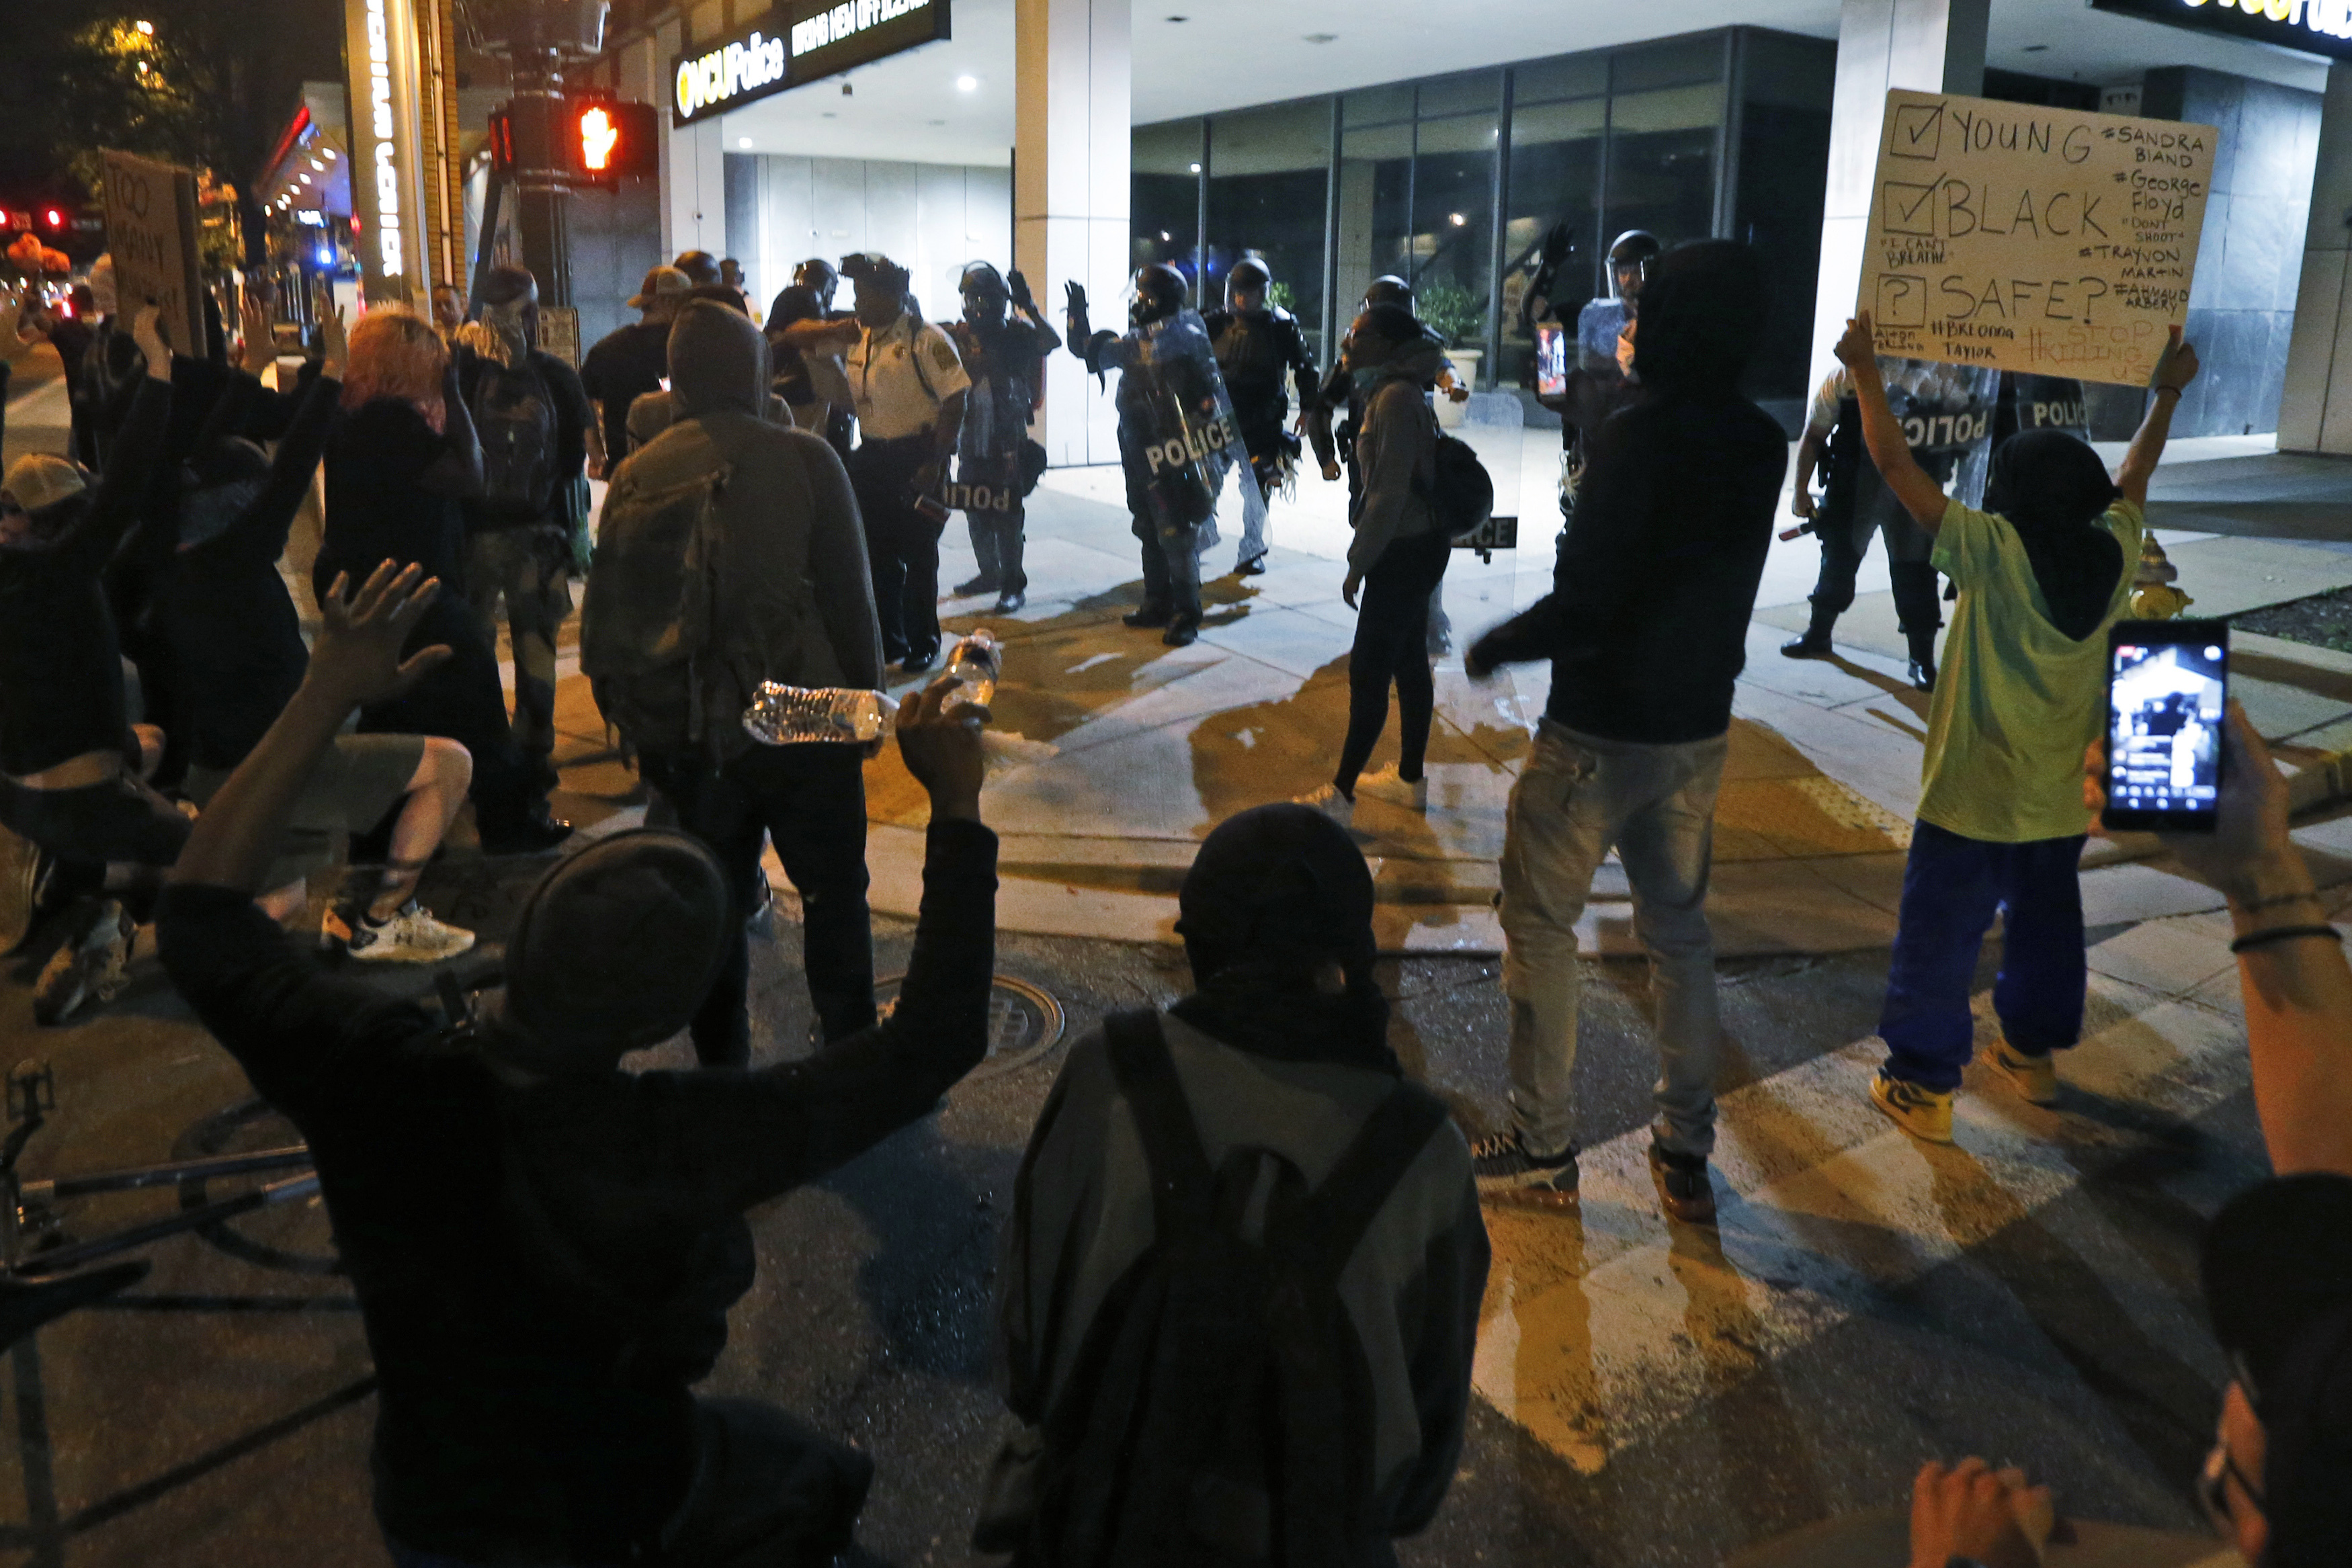 Protesters speak to Virginia Commonwealth University police who expressed solidarity with the marchers during a third night of unrest Sunday May 31, 2020, in Richmond, Va. Gov. Ralph Northam issued a curfew for this evening. (AP Photo/Steve Helber)